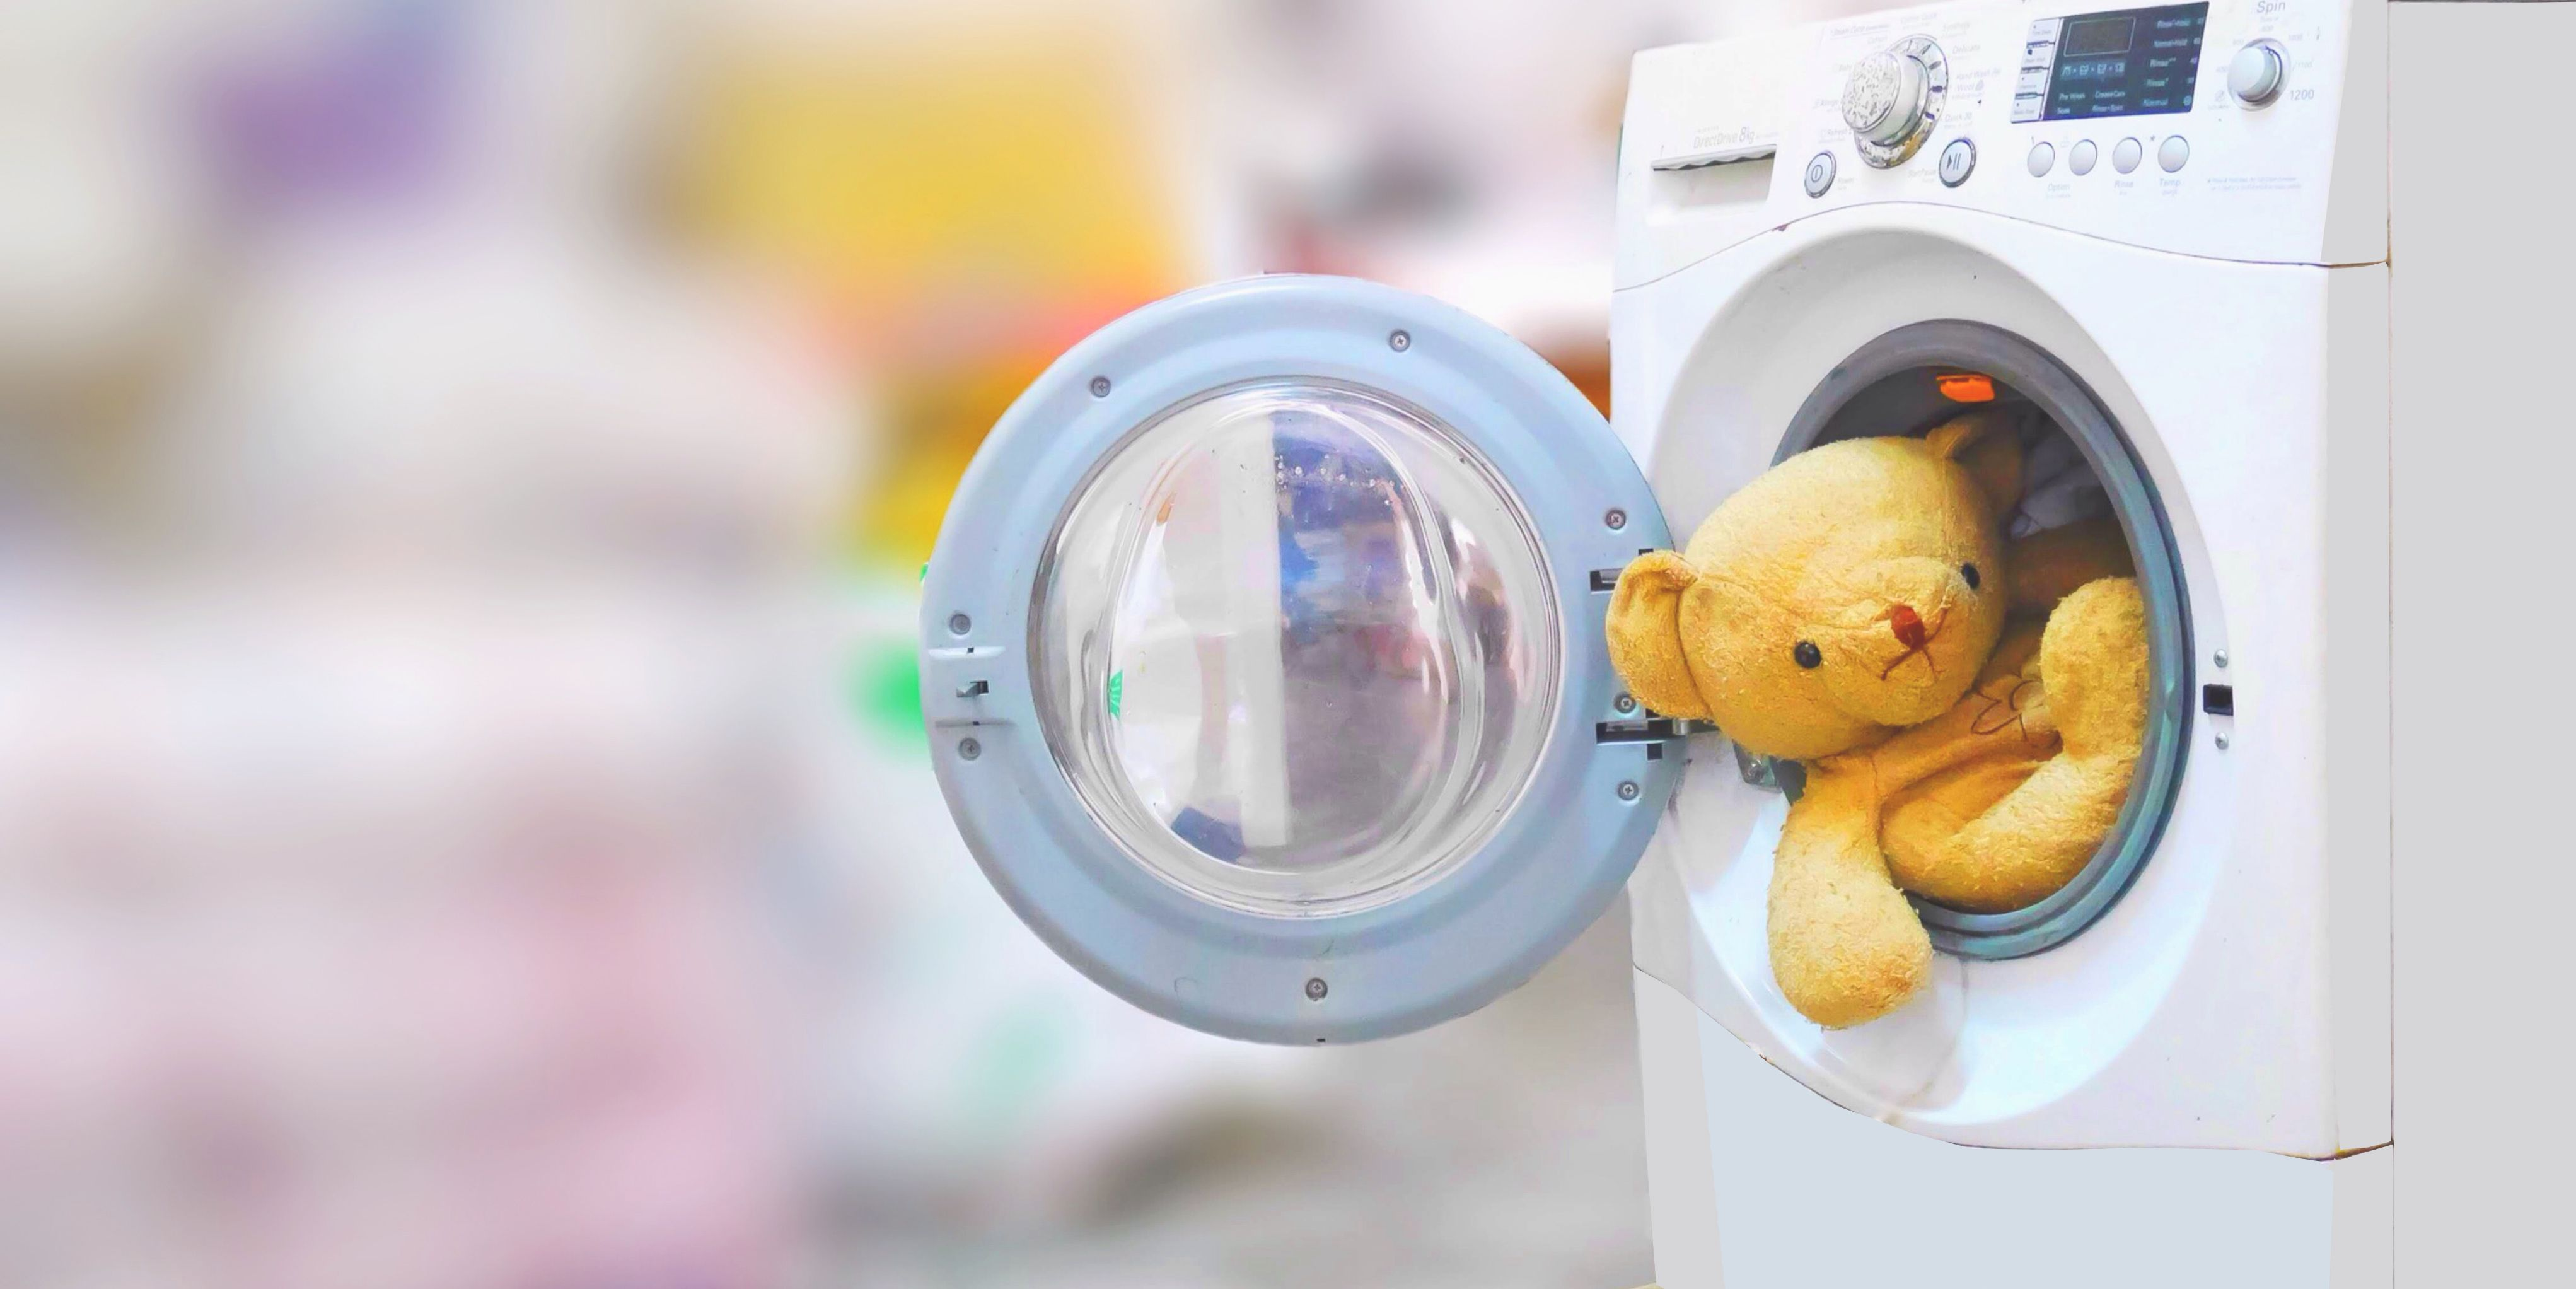 How To Clean And Disinfect Toys Germs On Kids